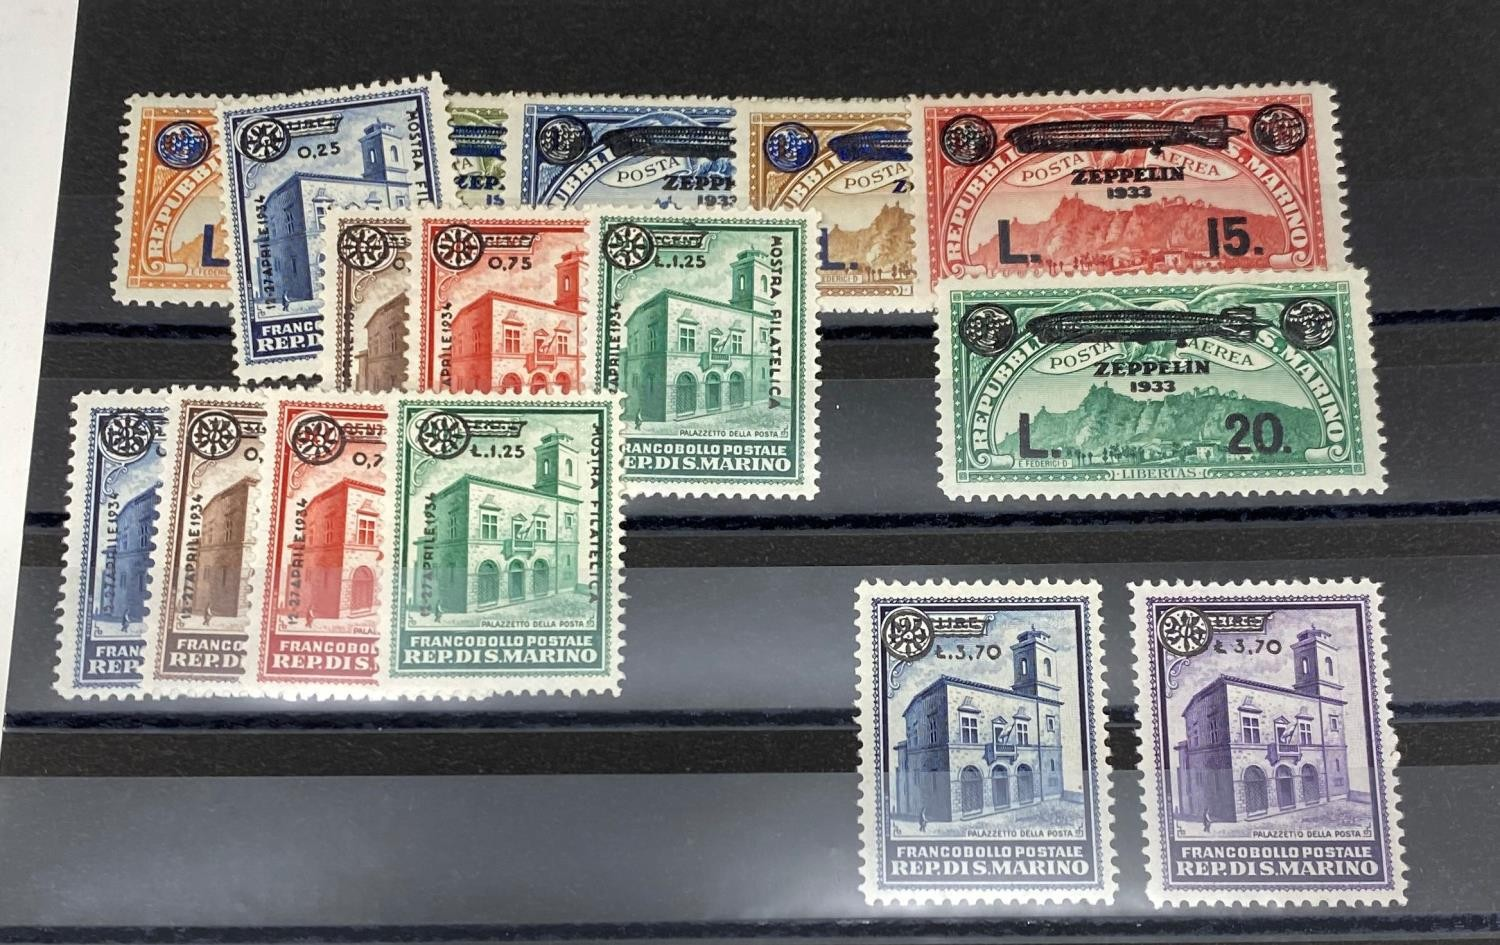 San Marino 1933-35 unused selection with 1933 Zeppelin set 1934 Milan Fair set and some better